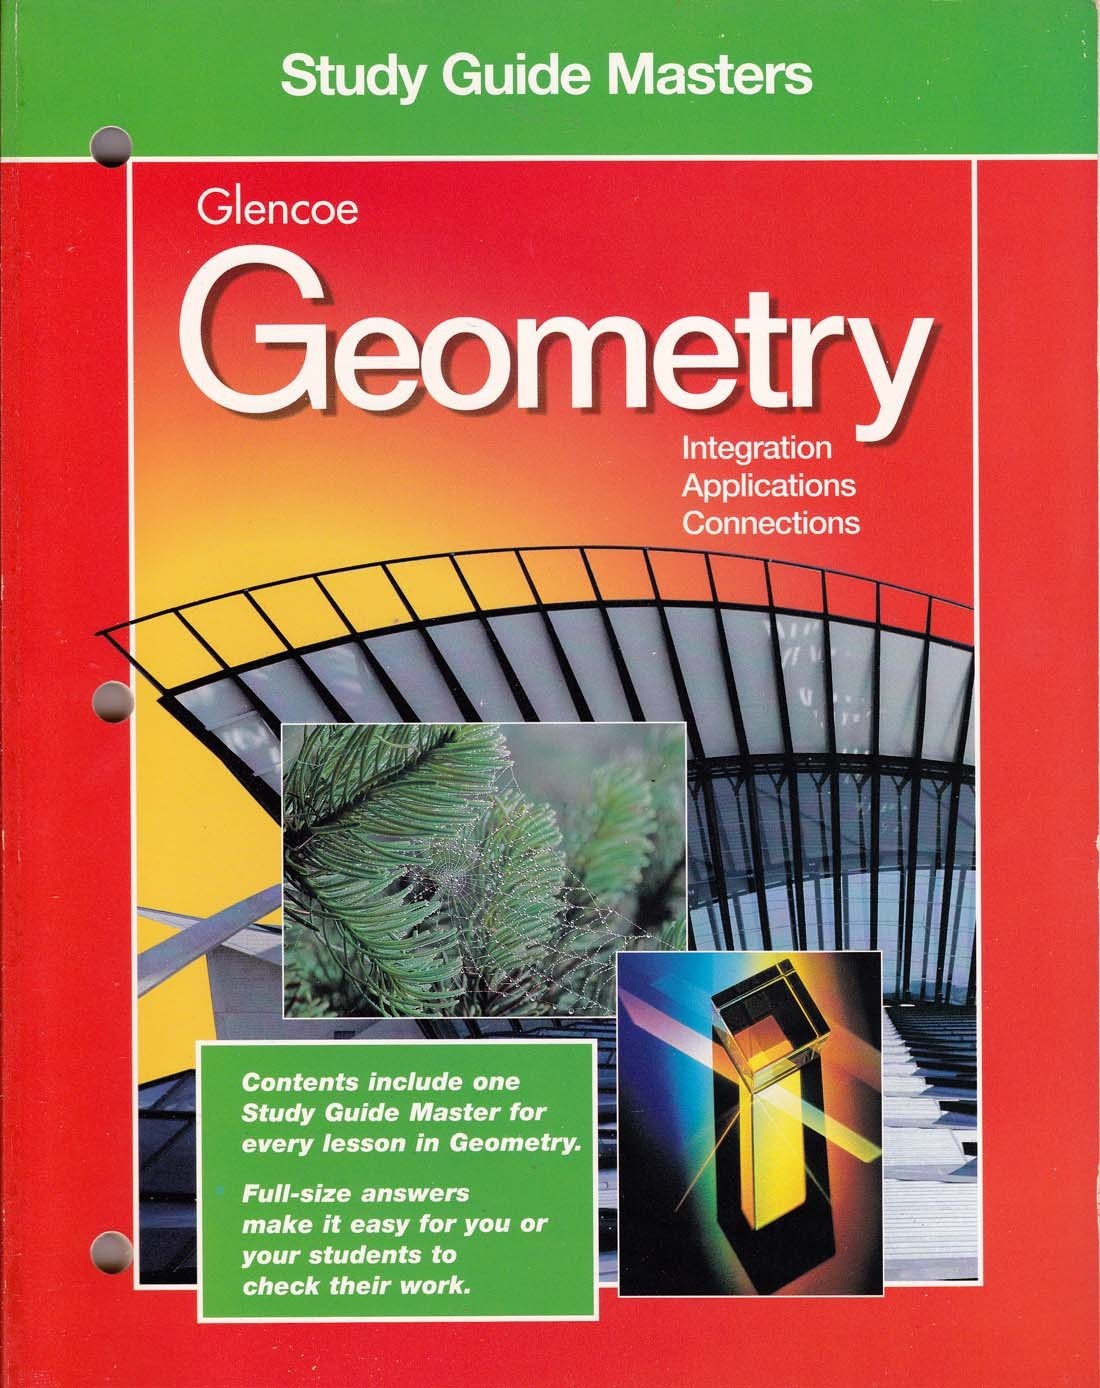 Workbooks glencoe mcgraw hill skills practice workbook answers : Study Guide Masters Glencoe Geometry, Integration, Applications ...